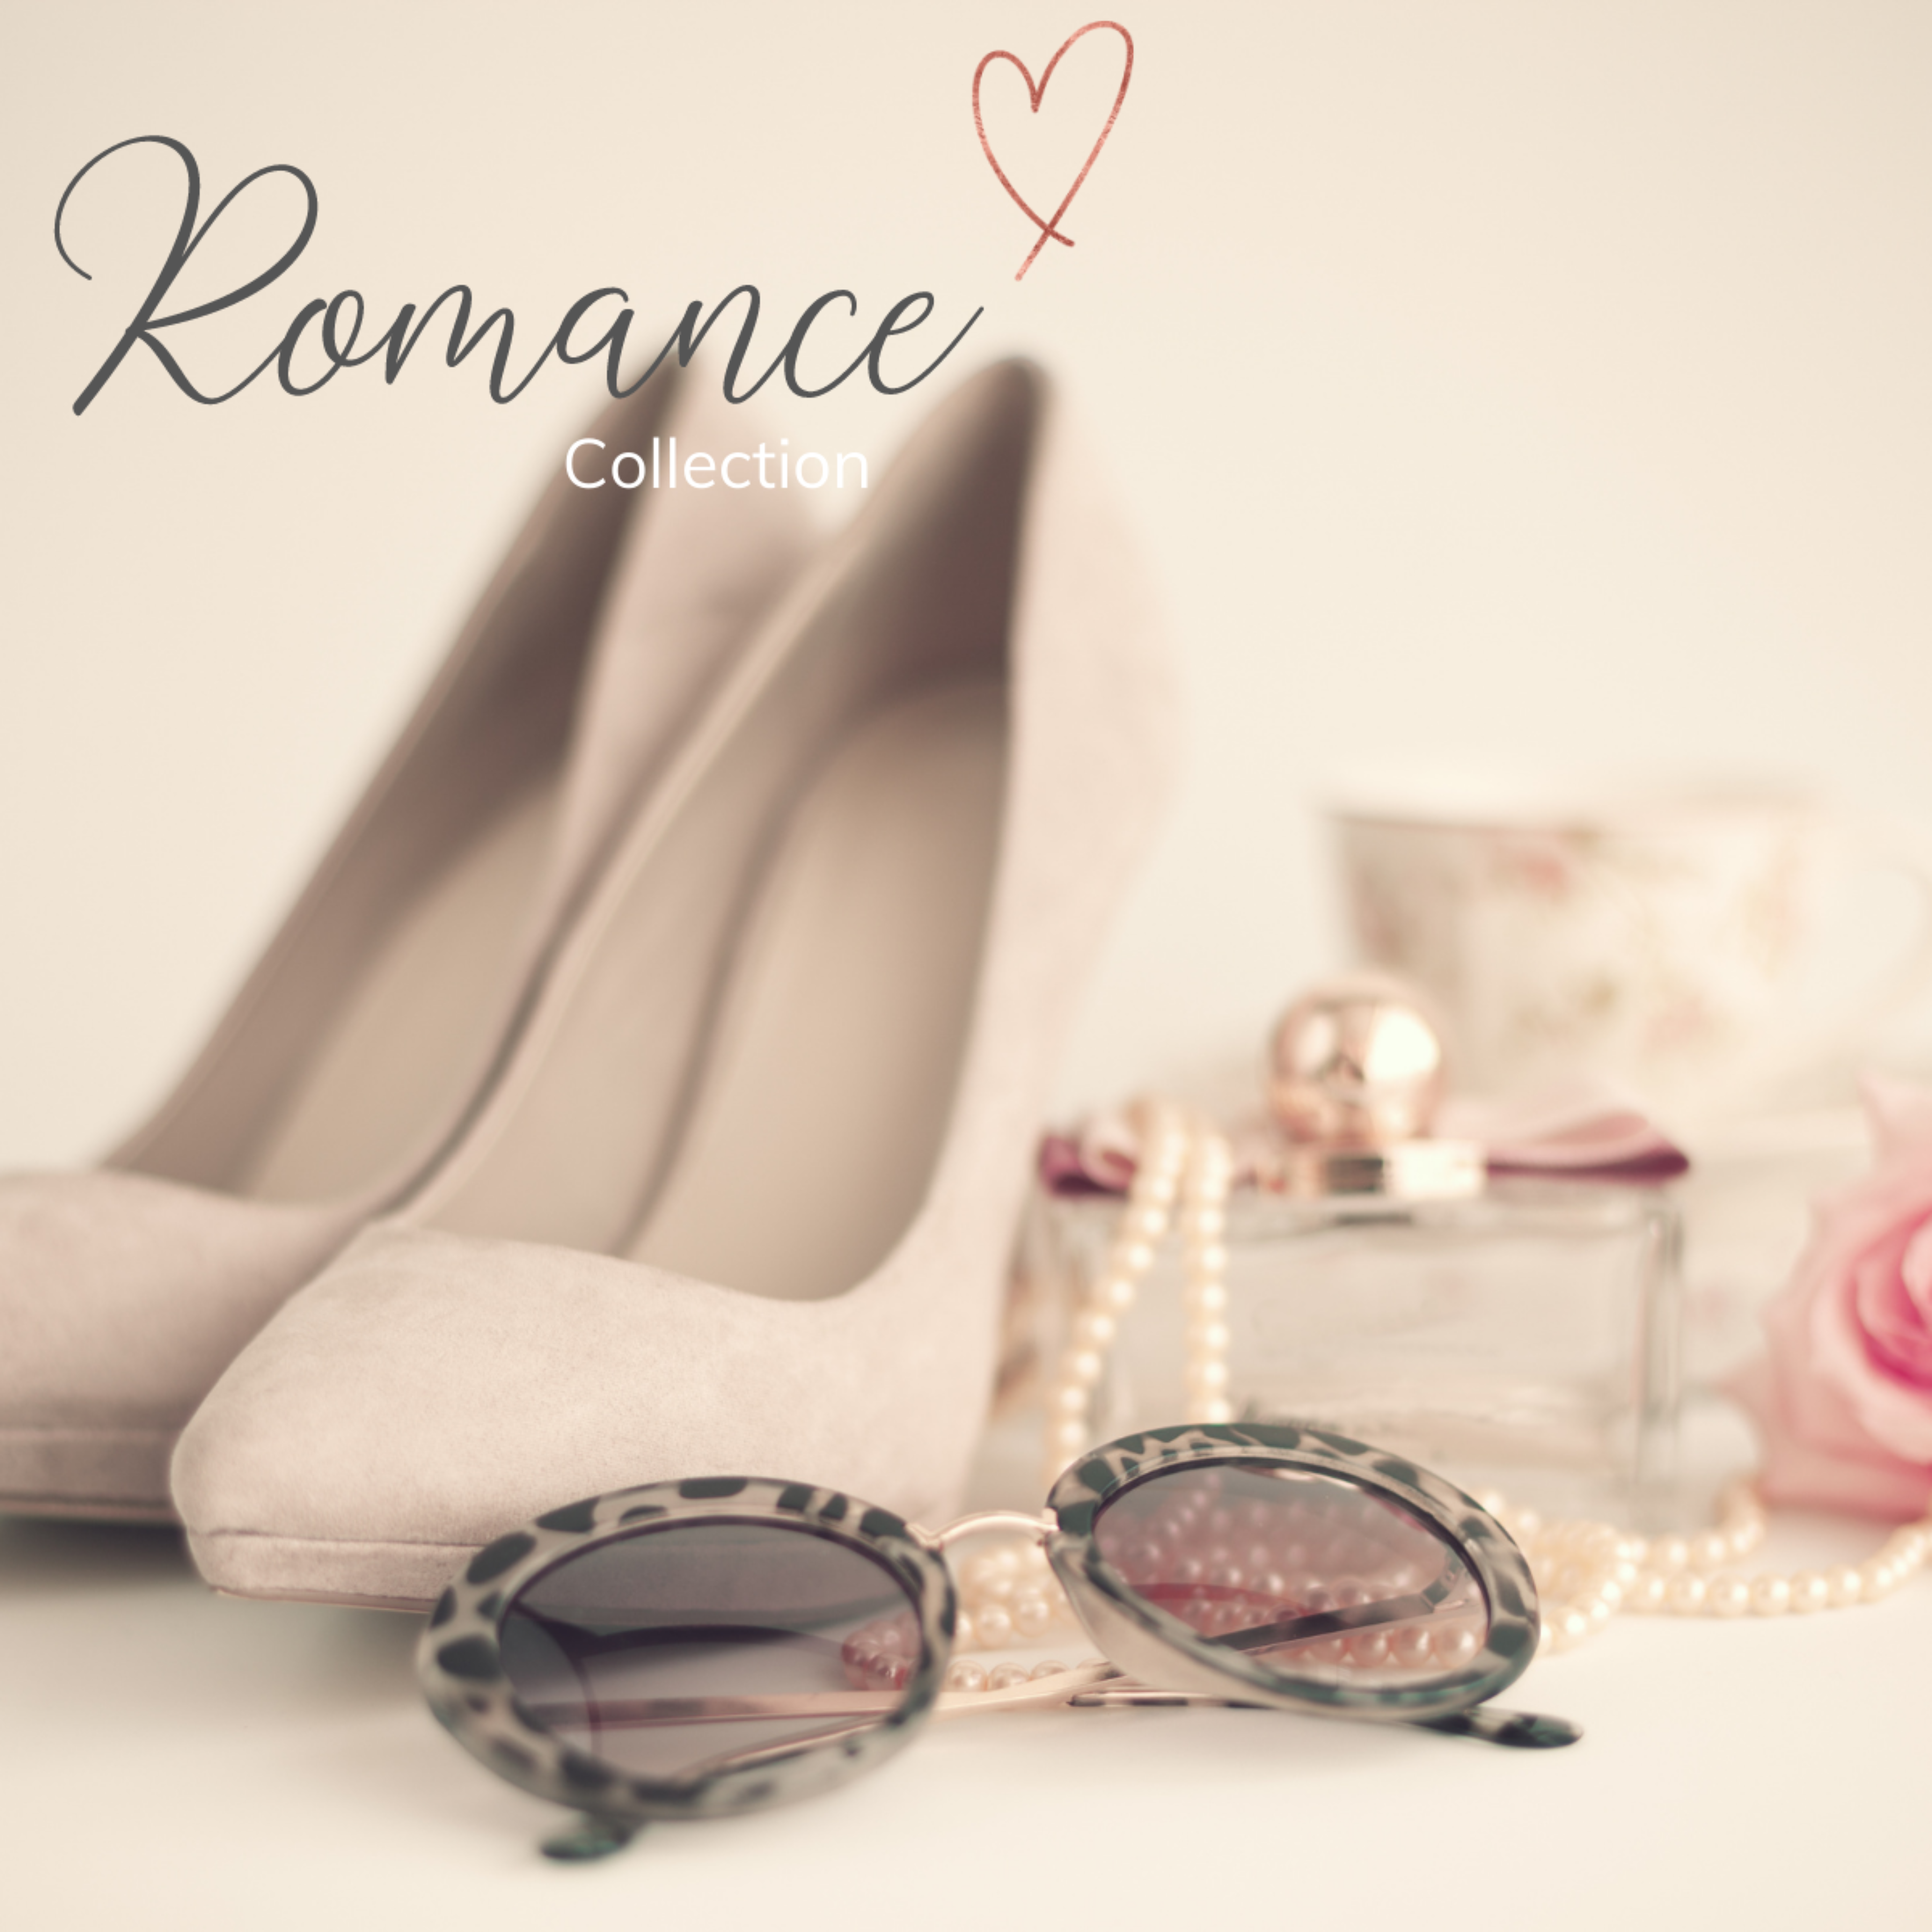 Romance collection wax melts